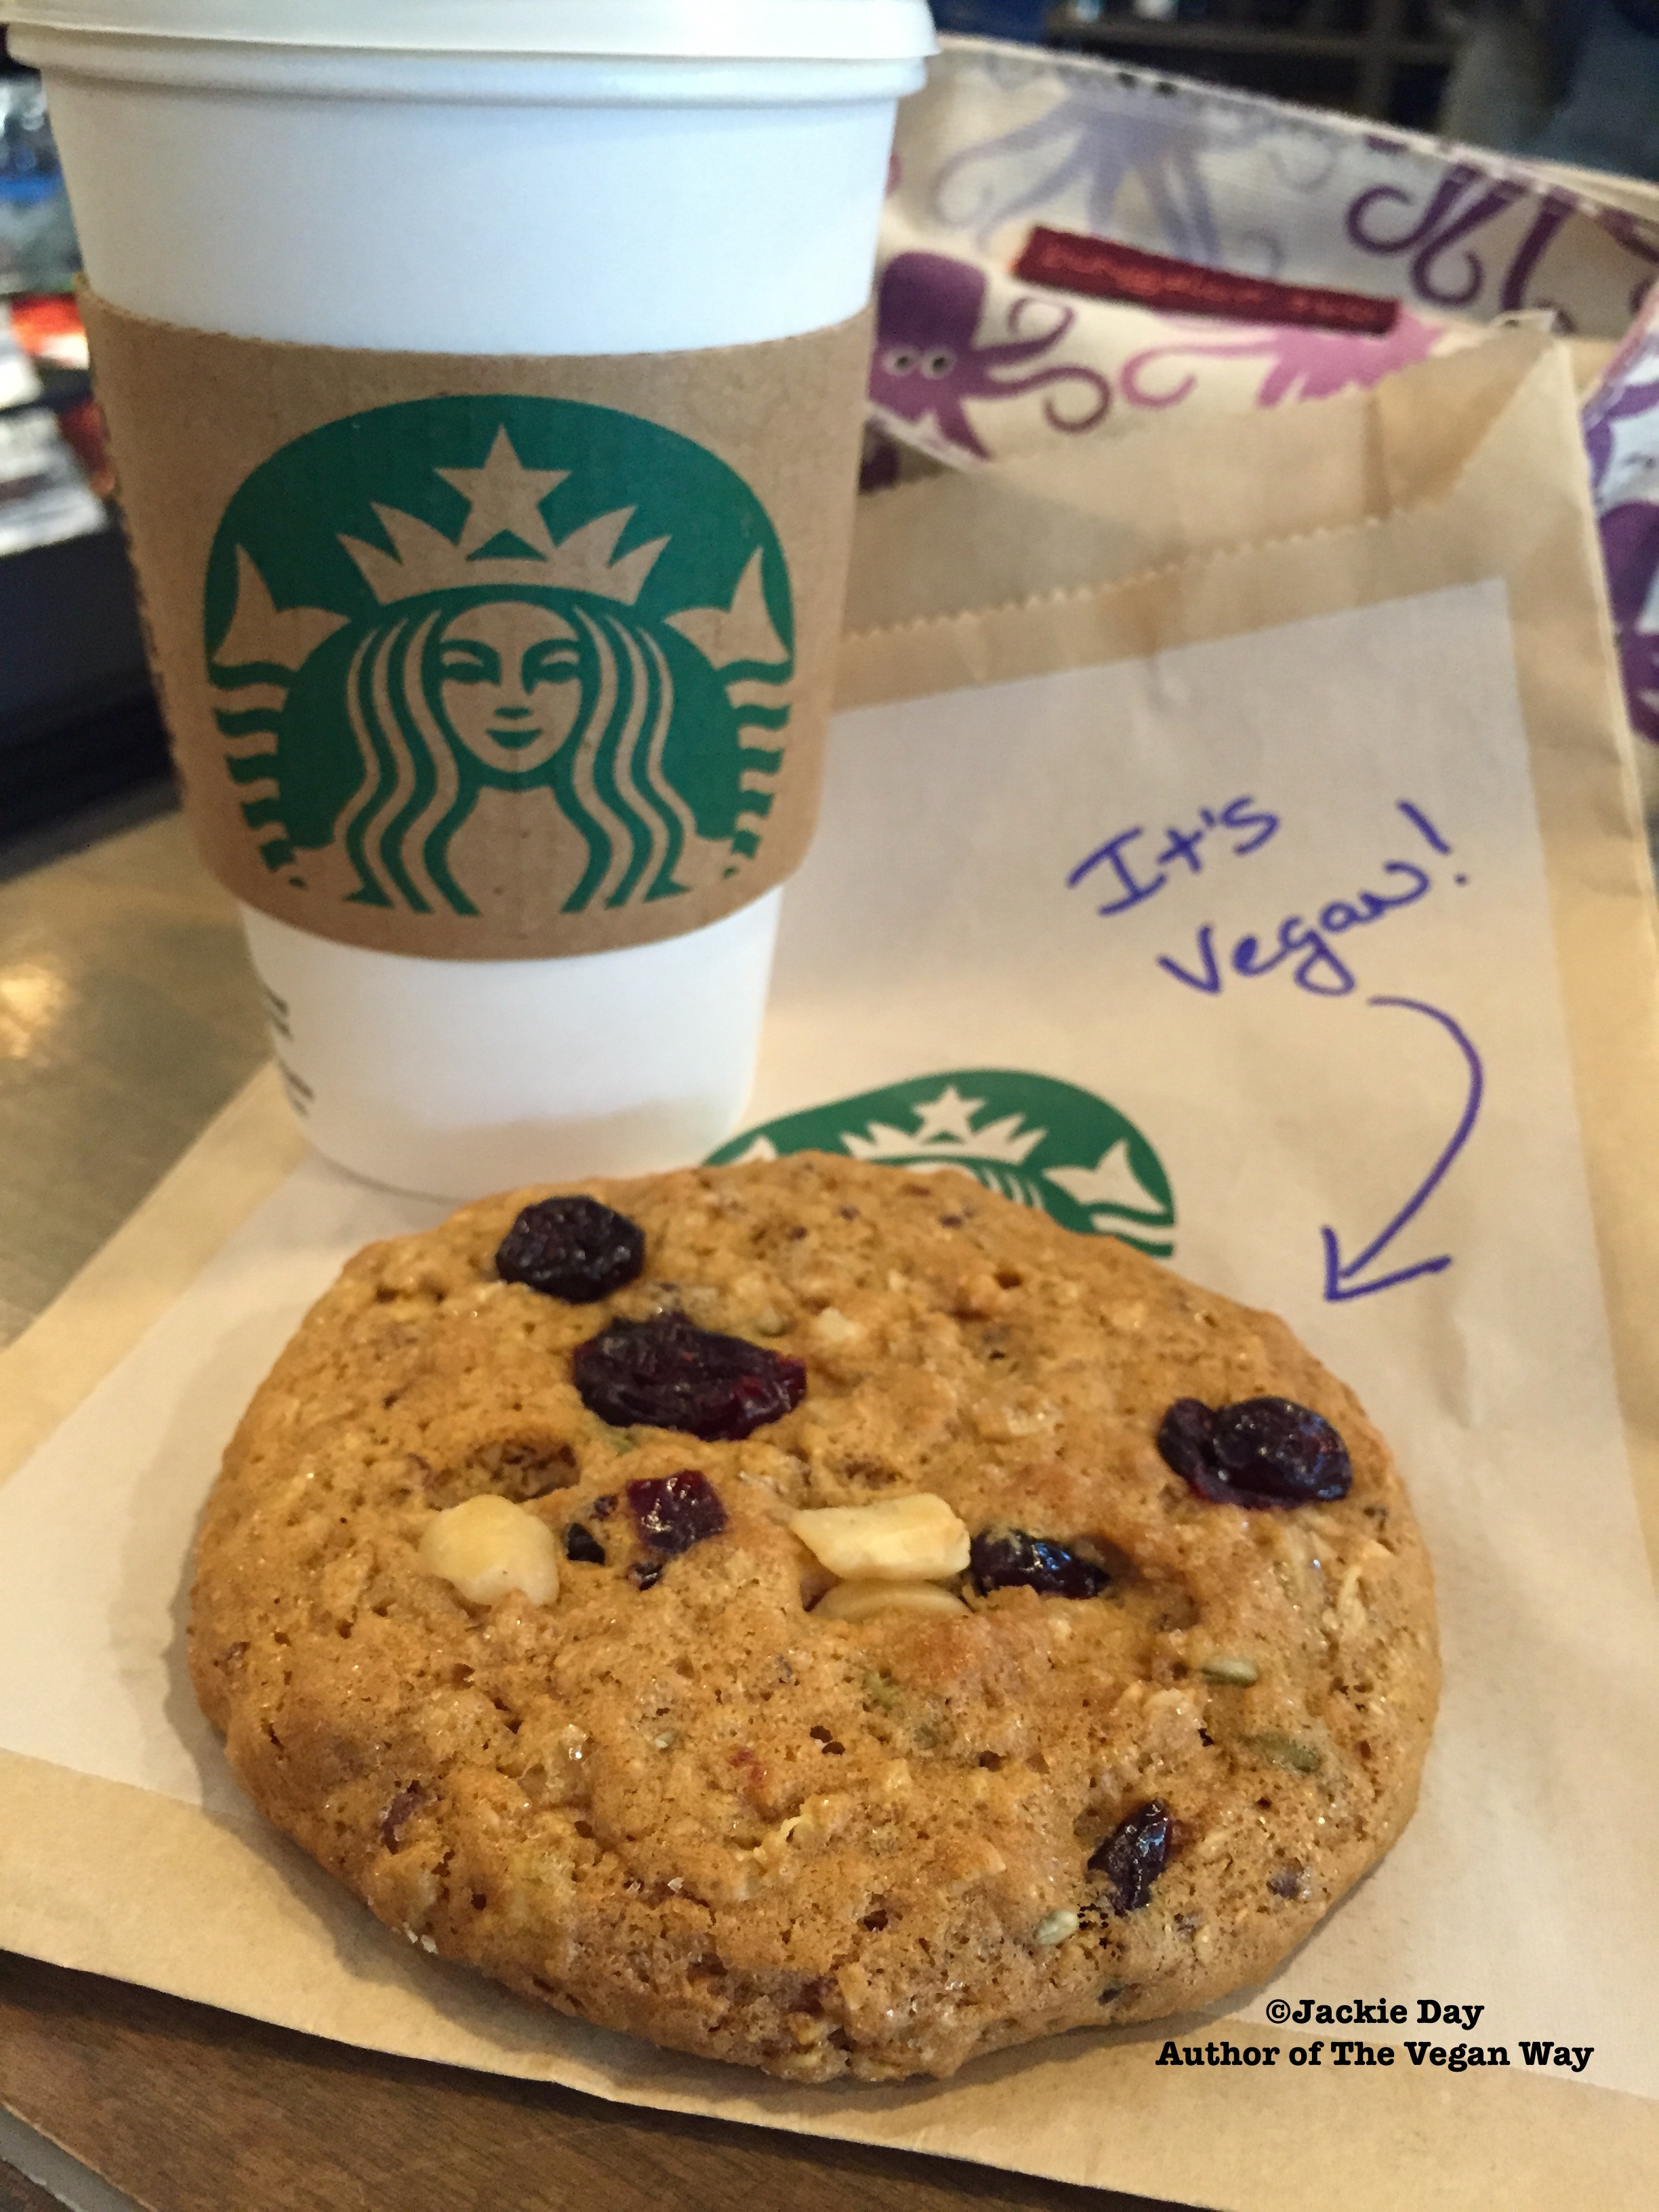 Starbucks Vegan Pastries  BREAKING Vegan Cookies at Starbucks Nationwide Thanks To